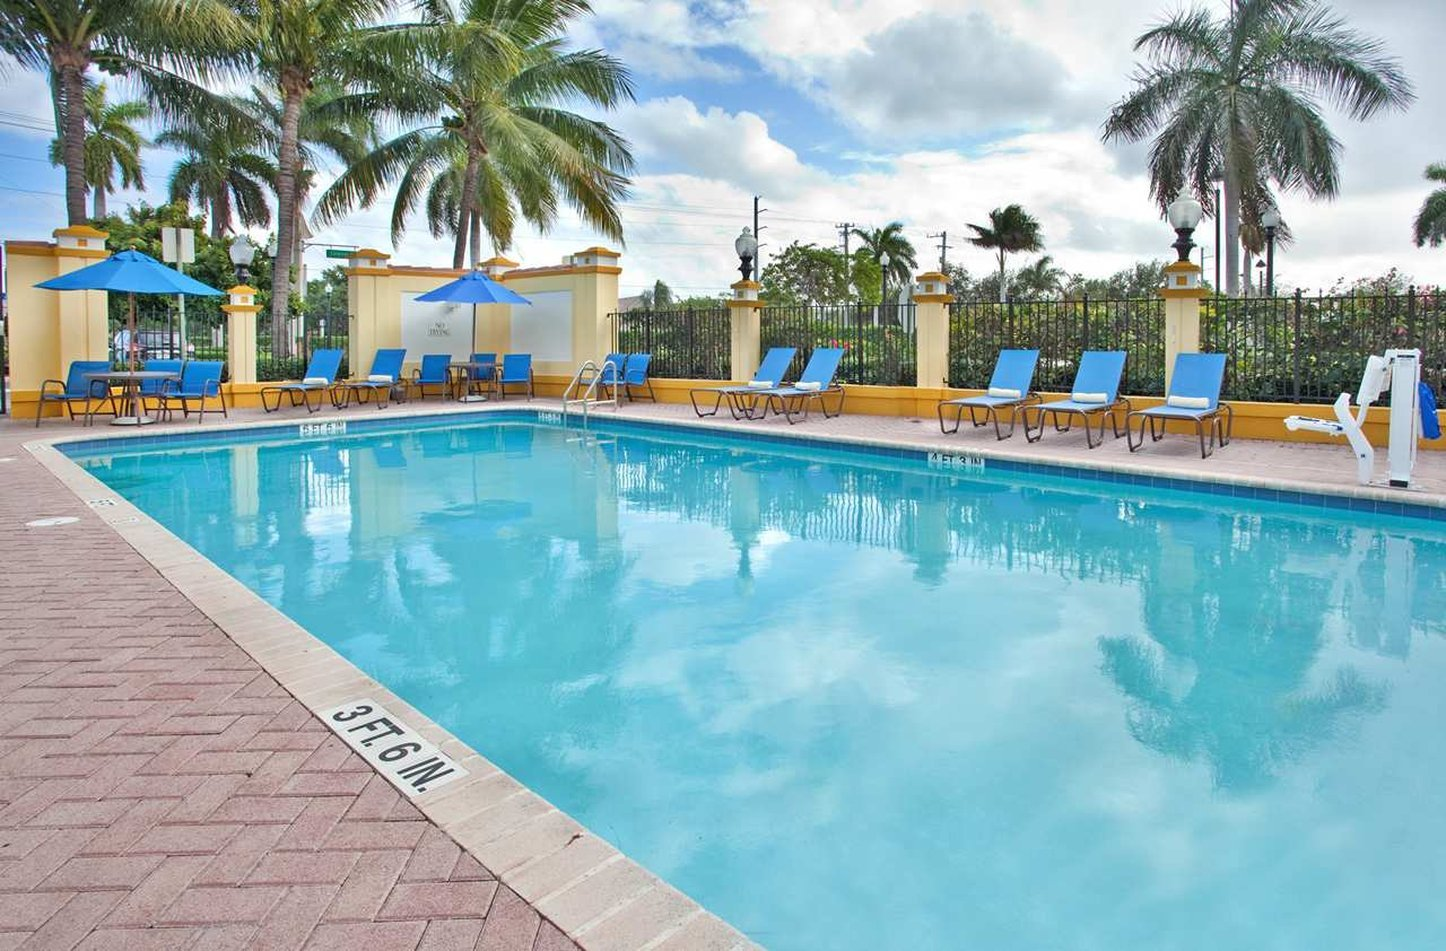 Fort Lauderdale Day Use Hotels Book A Dayroom Hotelsbyday